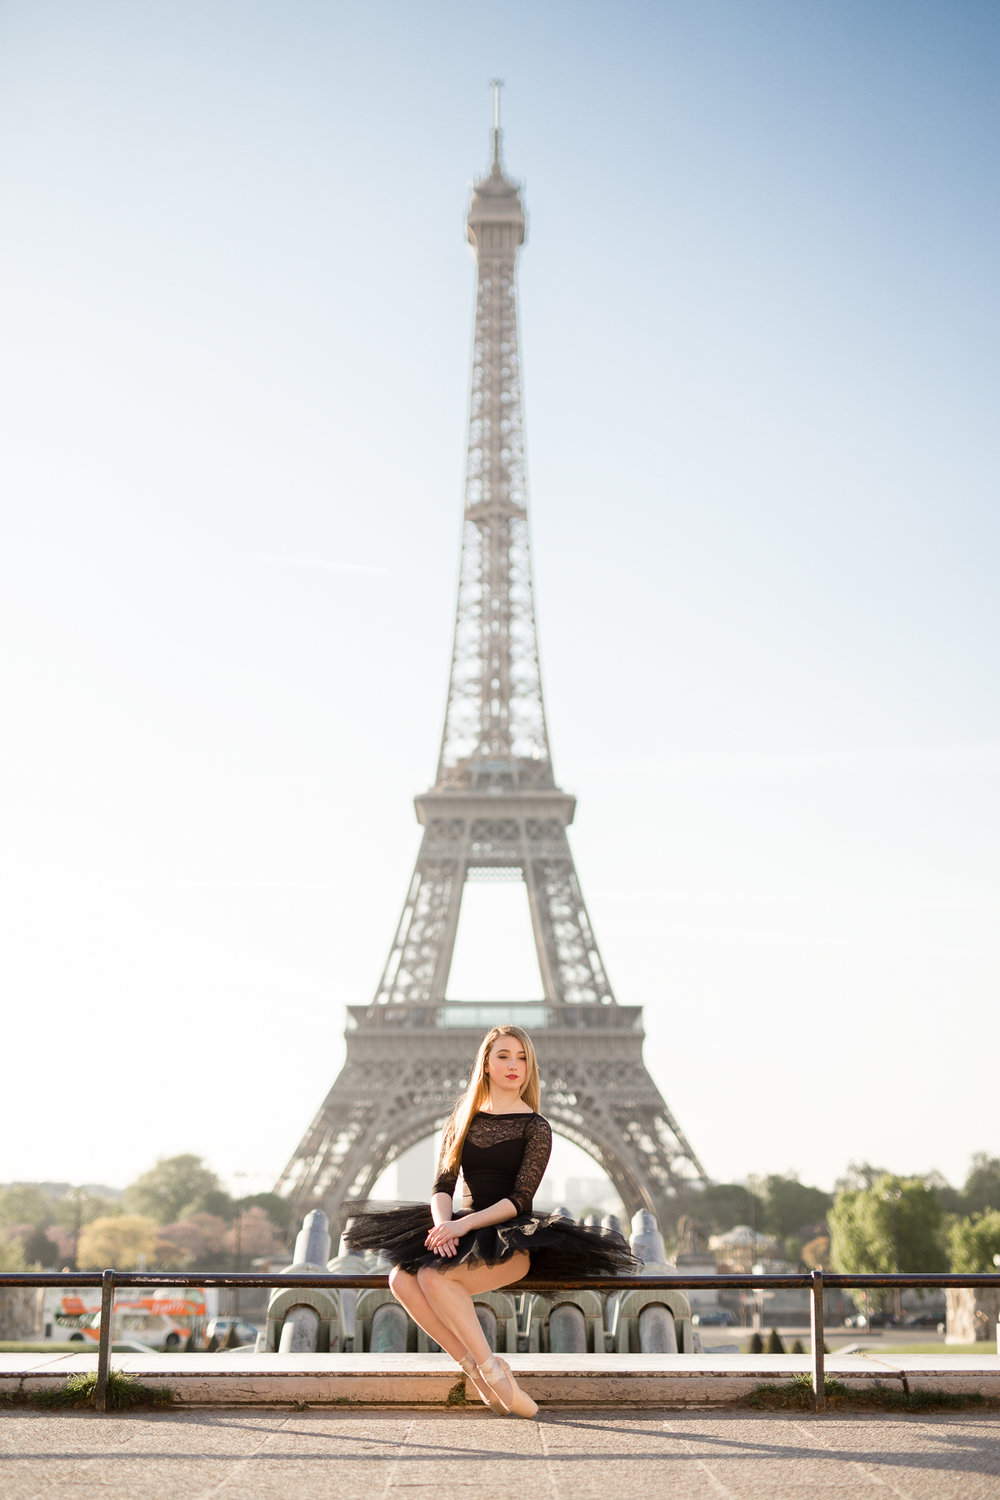 paris-ballerina-photographer-Katie_donnelly_photography-Louvre_eiffel_tower-19.jpg